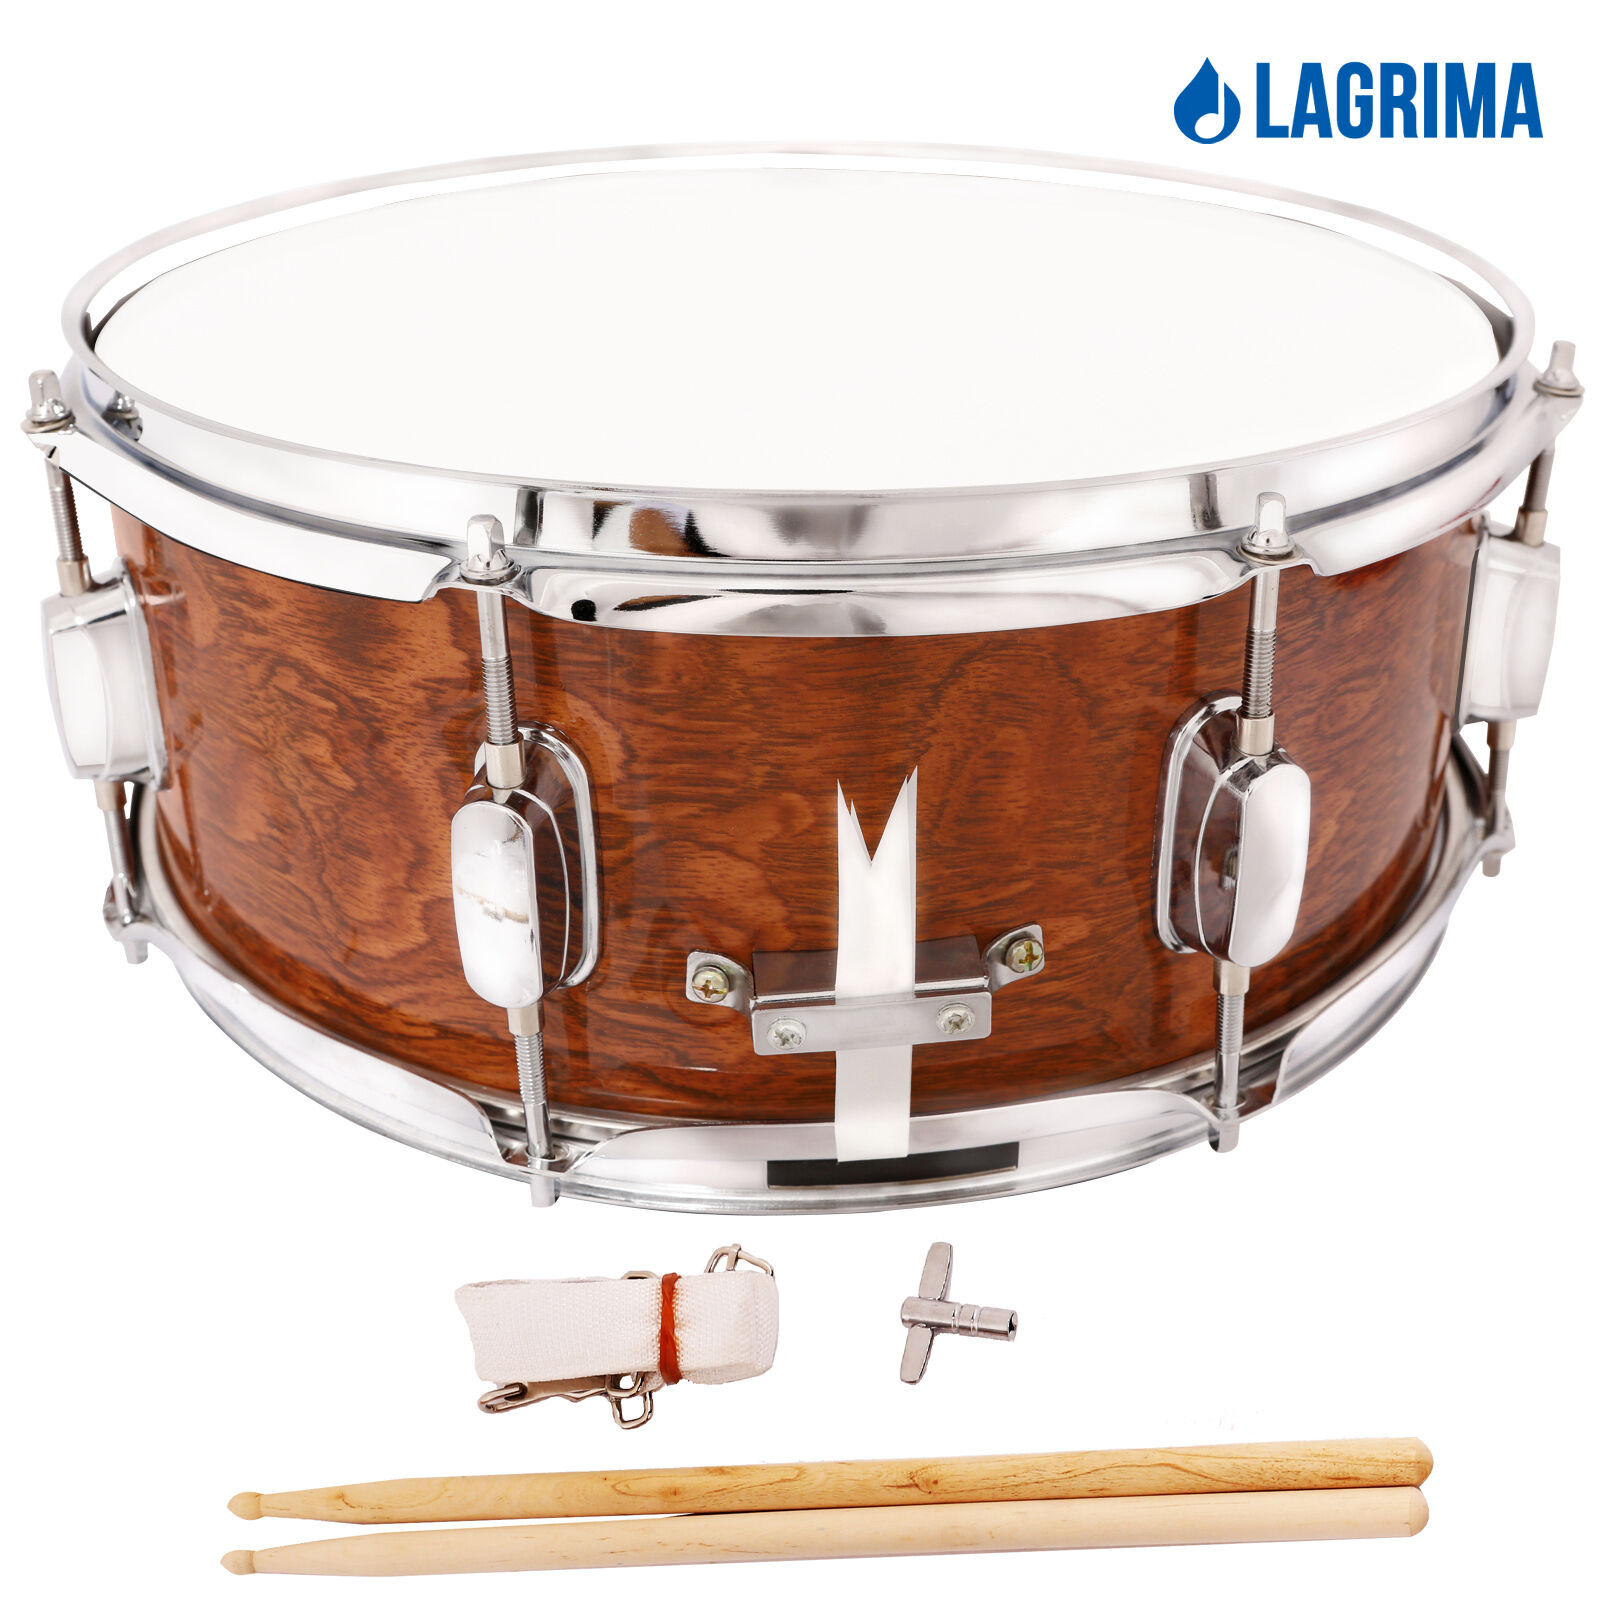 marching snare drum dark wood shell percussion poplar 14x5 5 inch. Black Bedroom Furniture Sets. Home Design Ideas